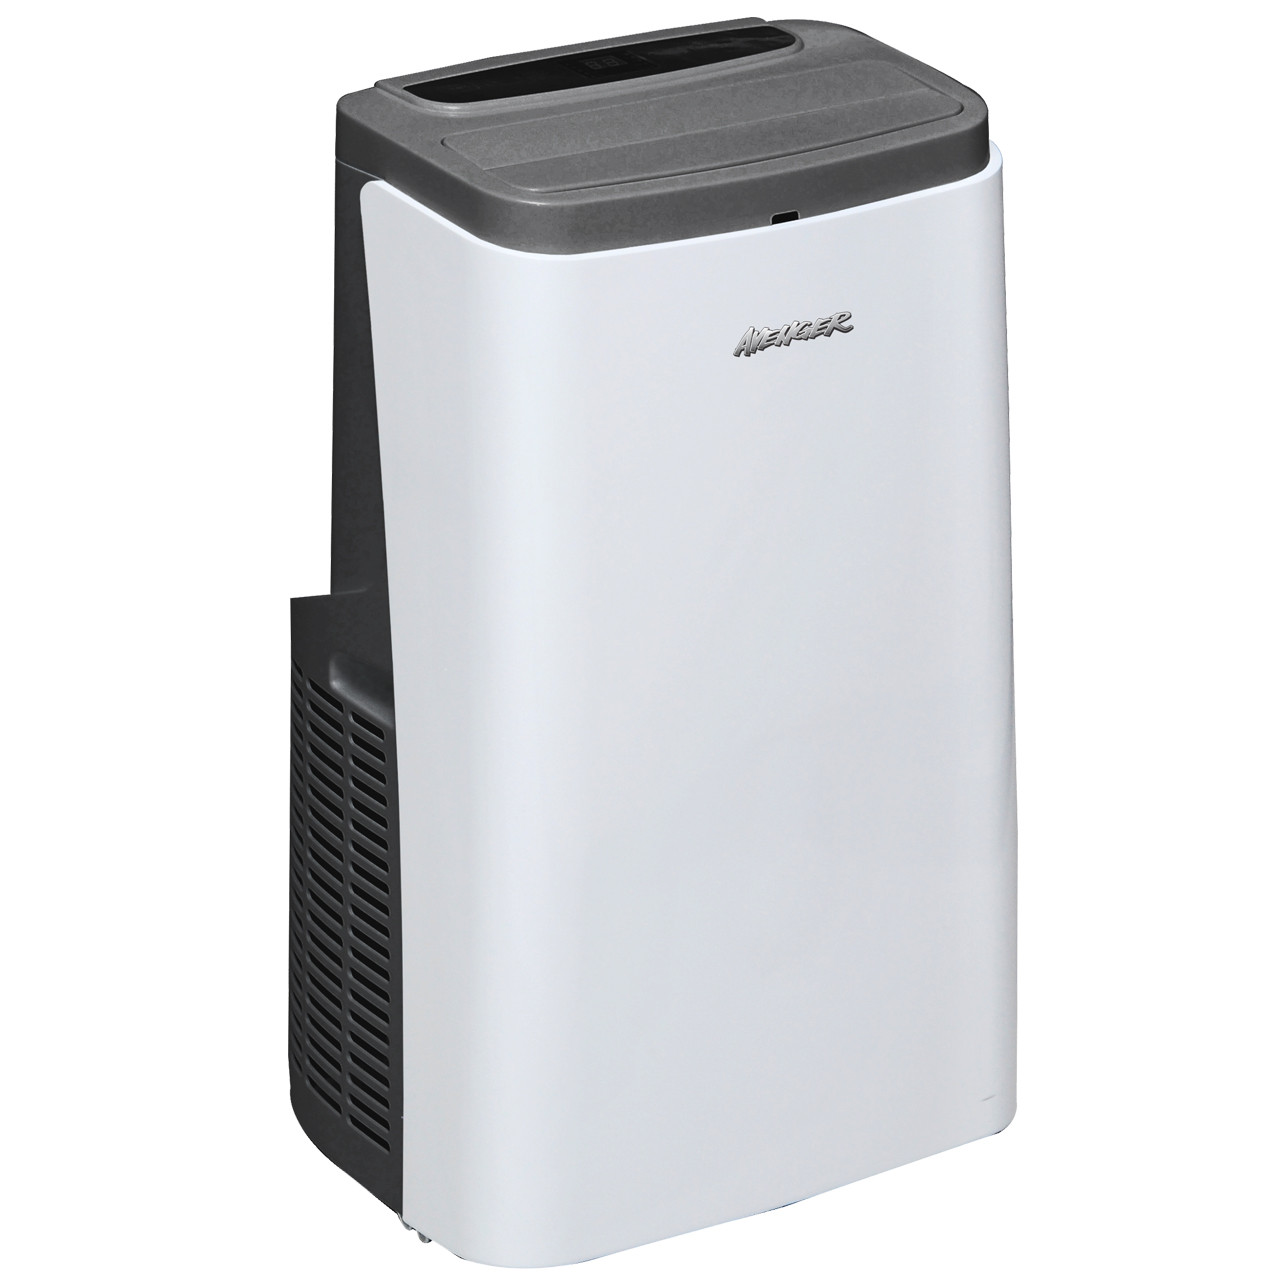 Is There A Portable Air Conditioner Without A Hose Acpfoto